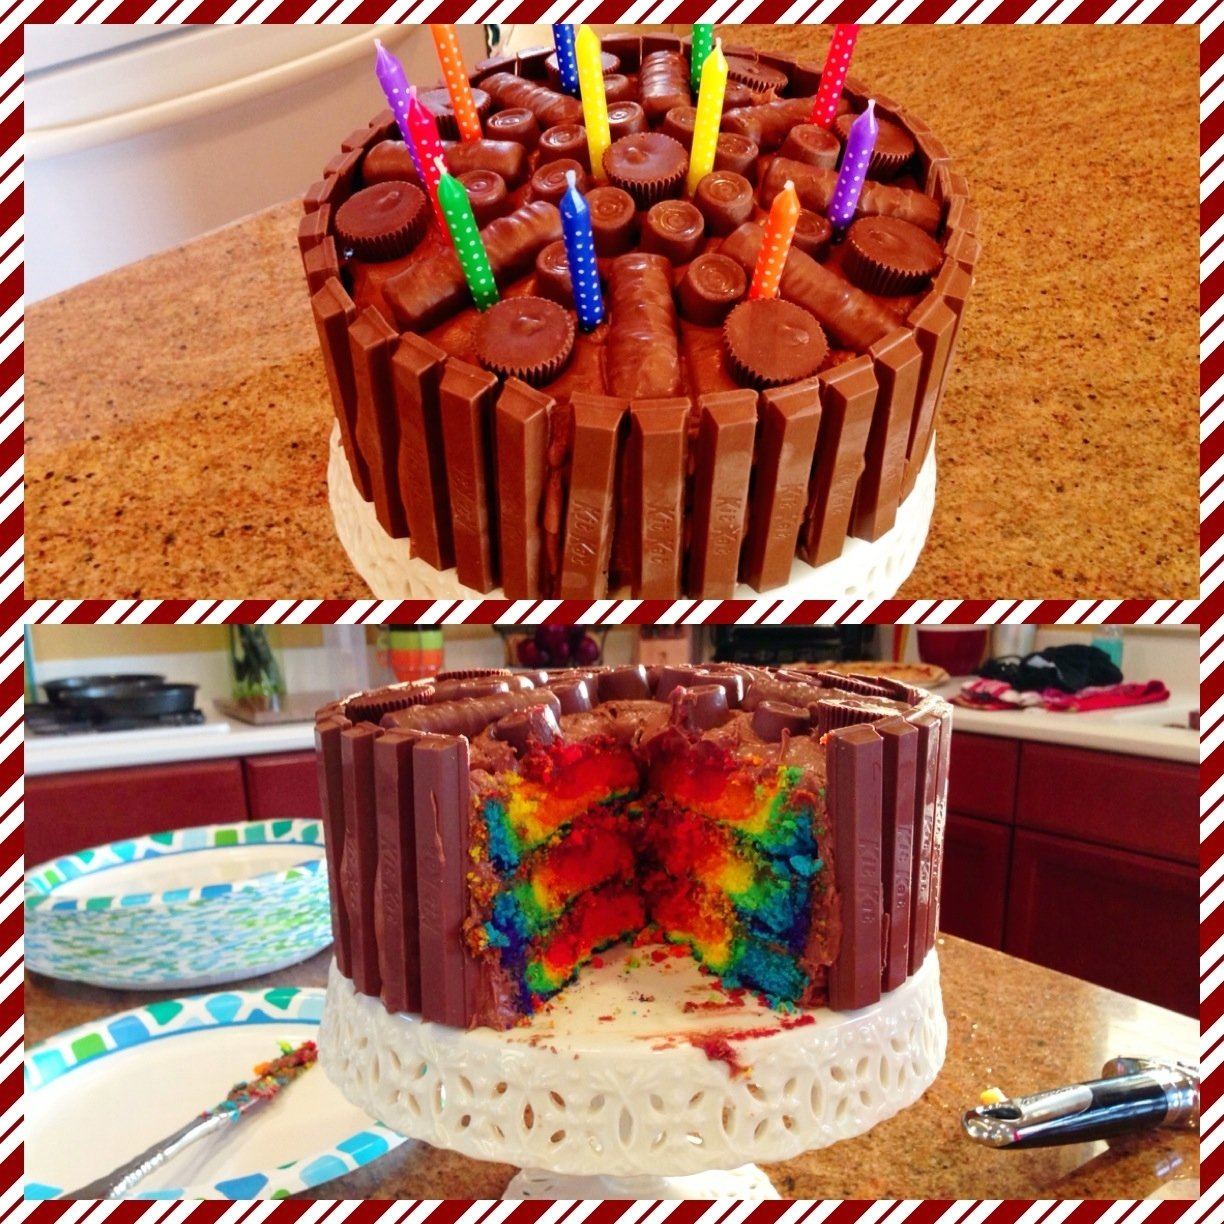 10 Great 12 Yr Old Birthday Ideas birthday cake for my 12 year old thank you pintrest for the great 6 2021